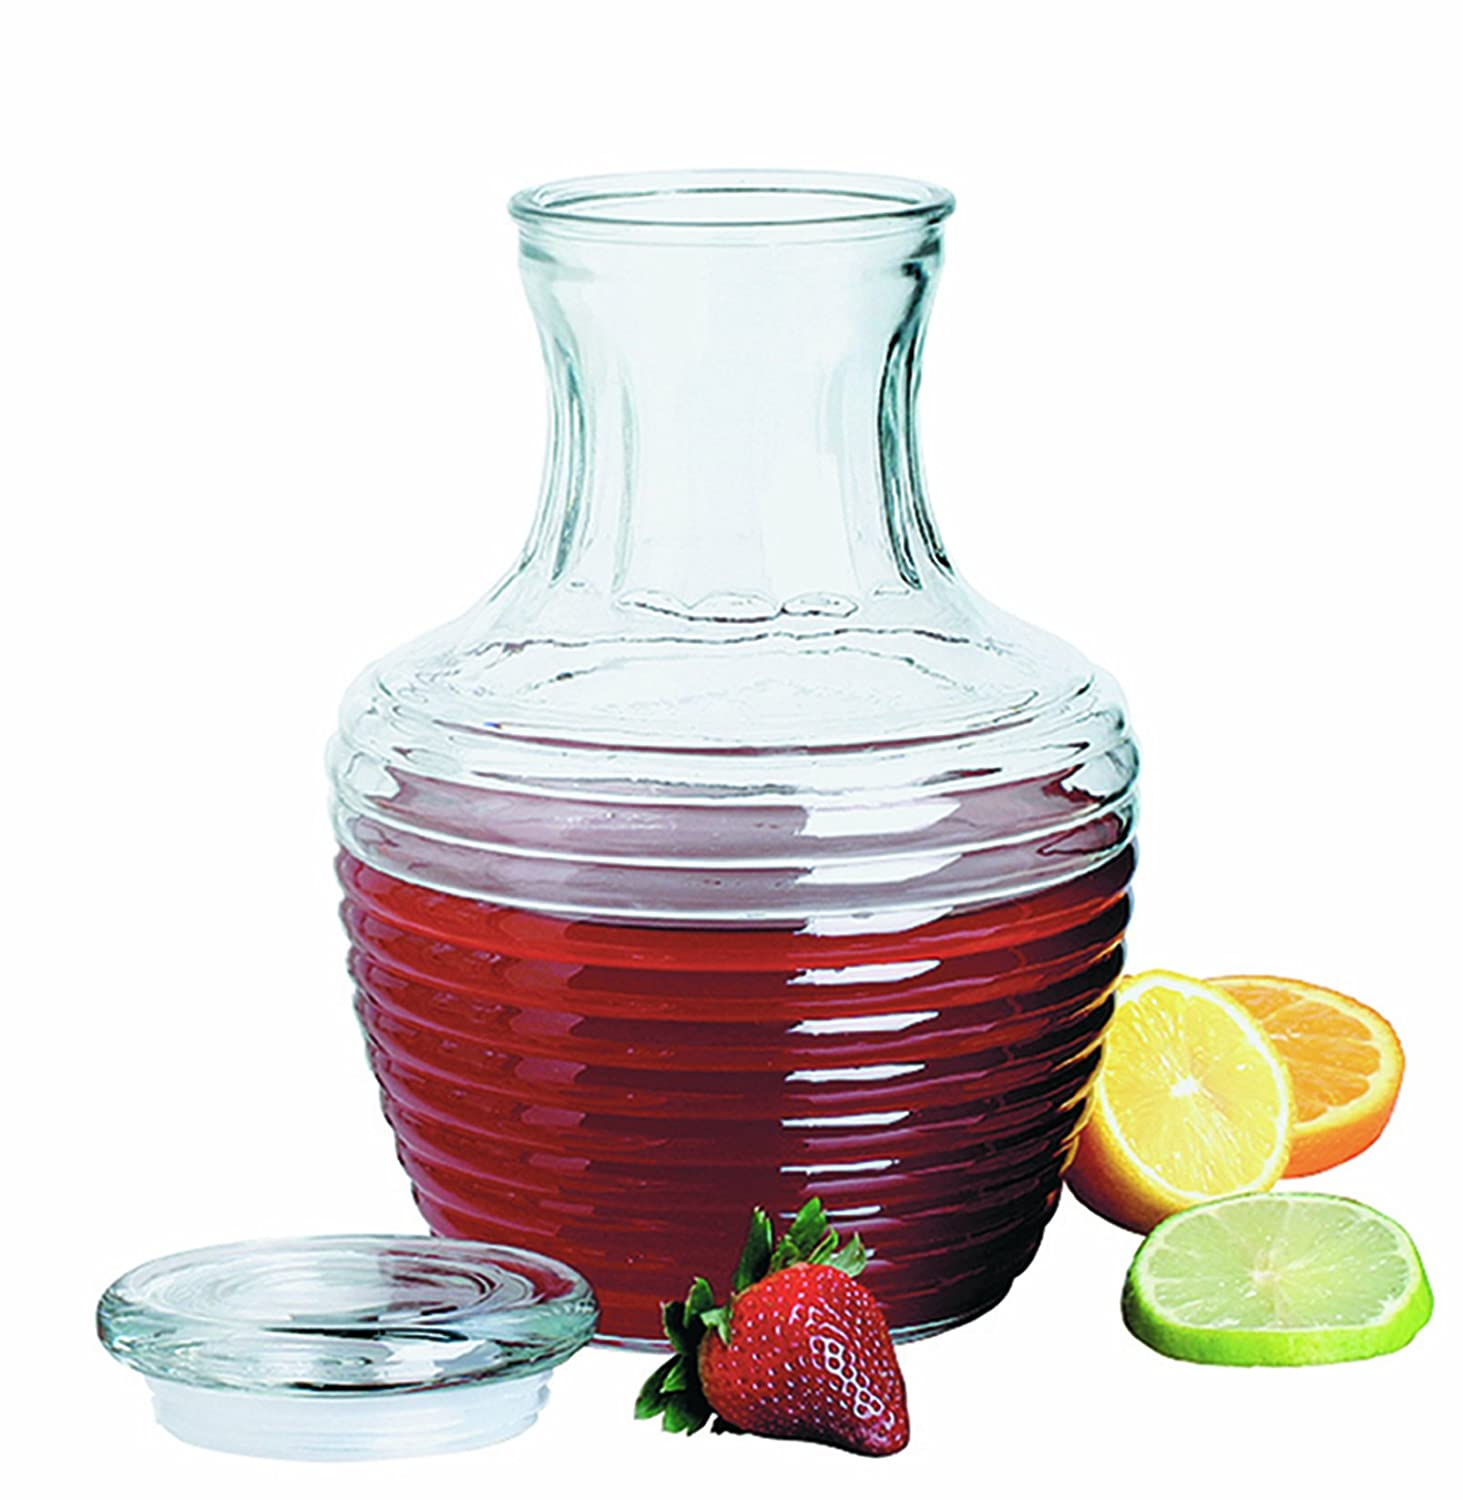 amazoncom  anchor hocking  chiller glass pitcher with lid  - amazoncom  anchor hocking  chiller glass pitcher with lid ounceglass gallon pitcher with lid bar cocktail  wine glasses